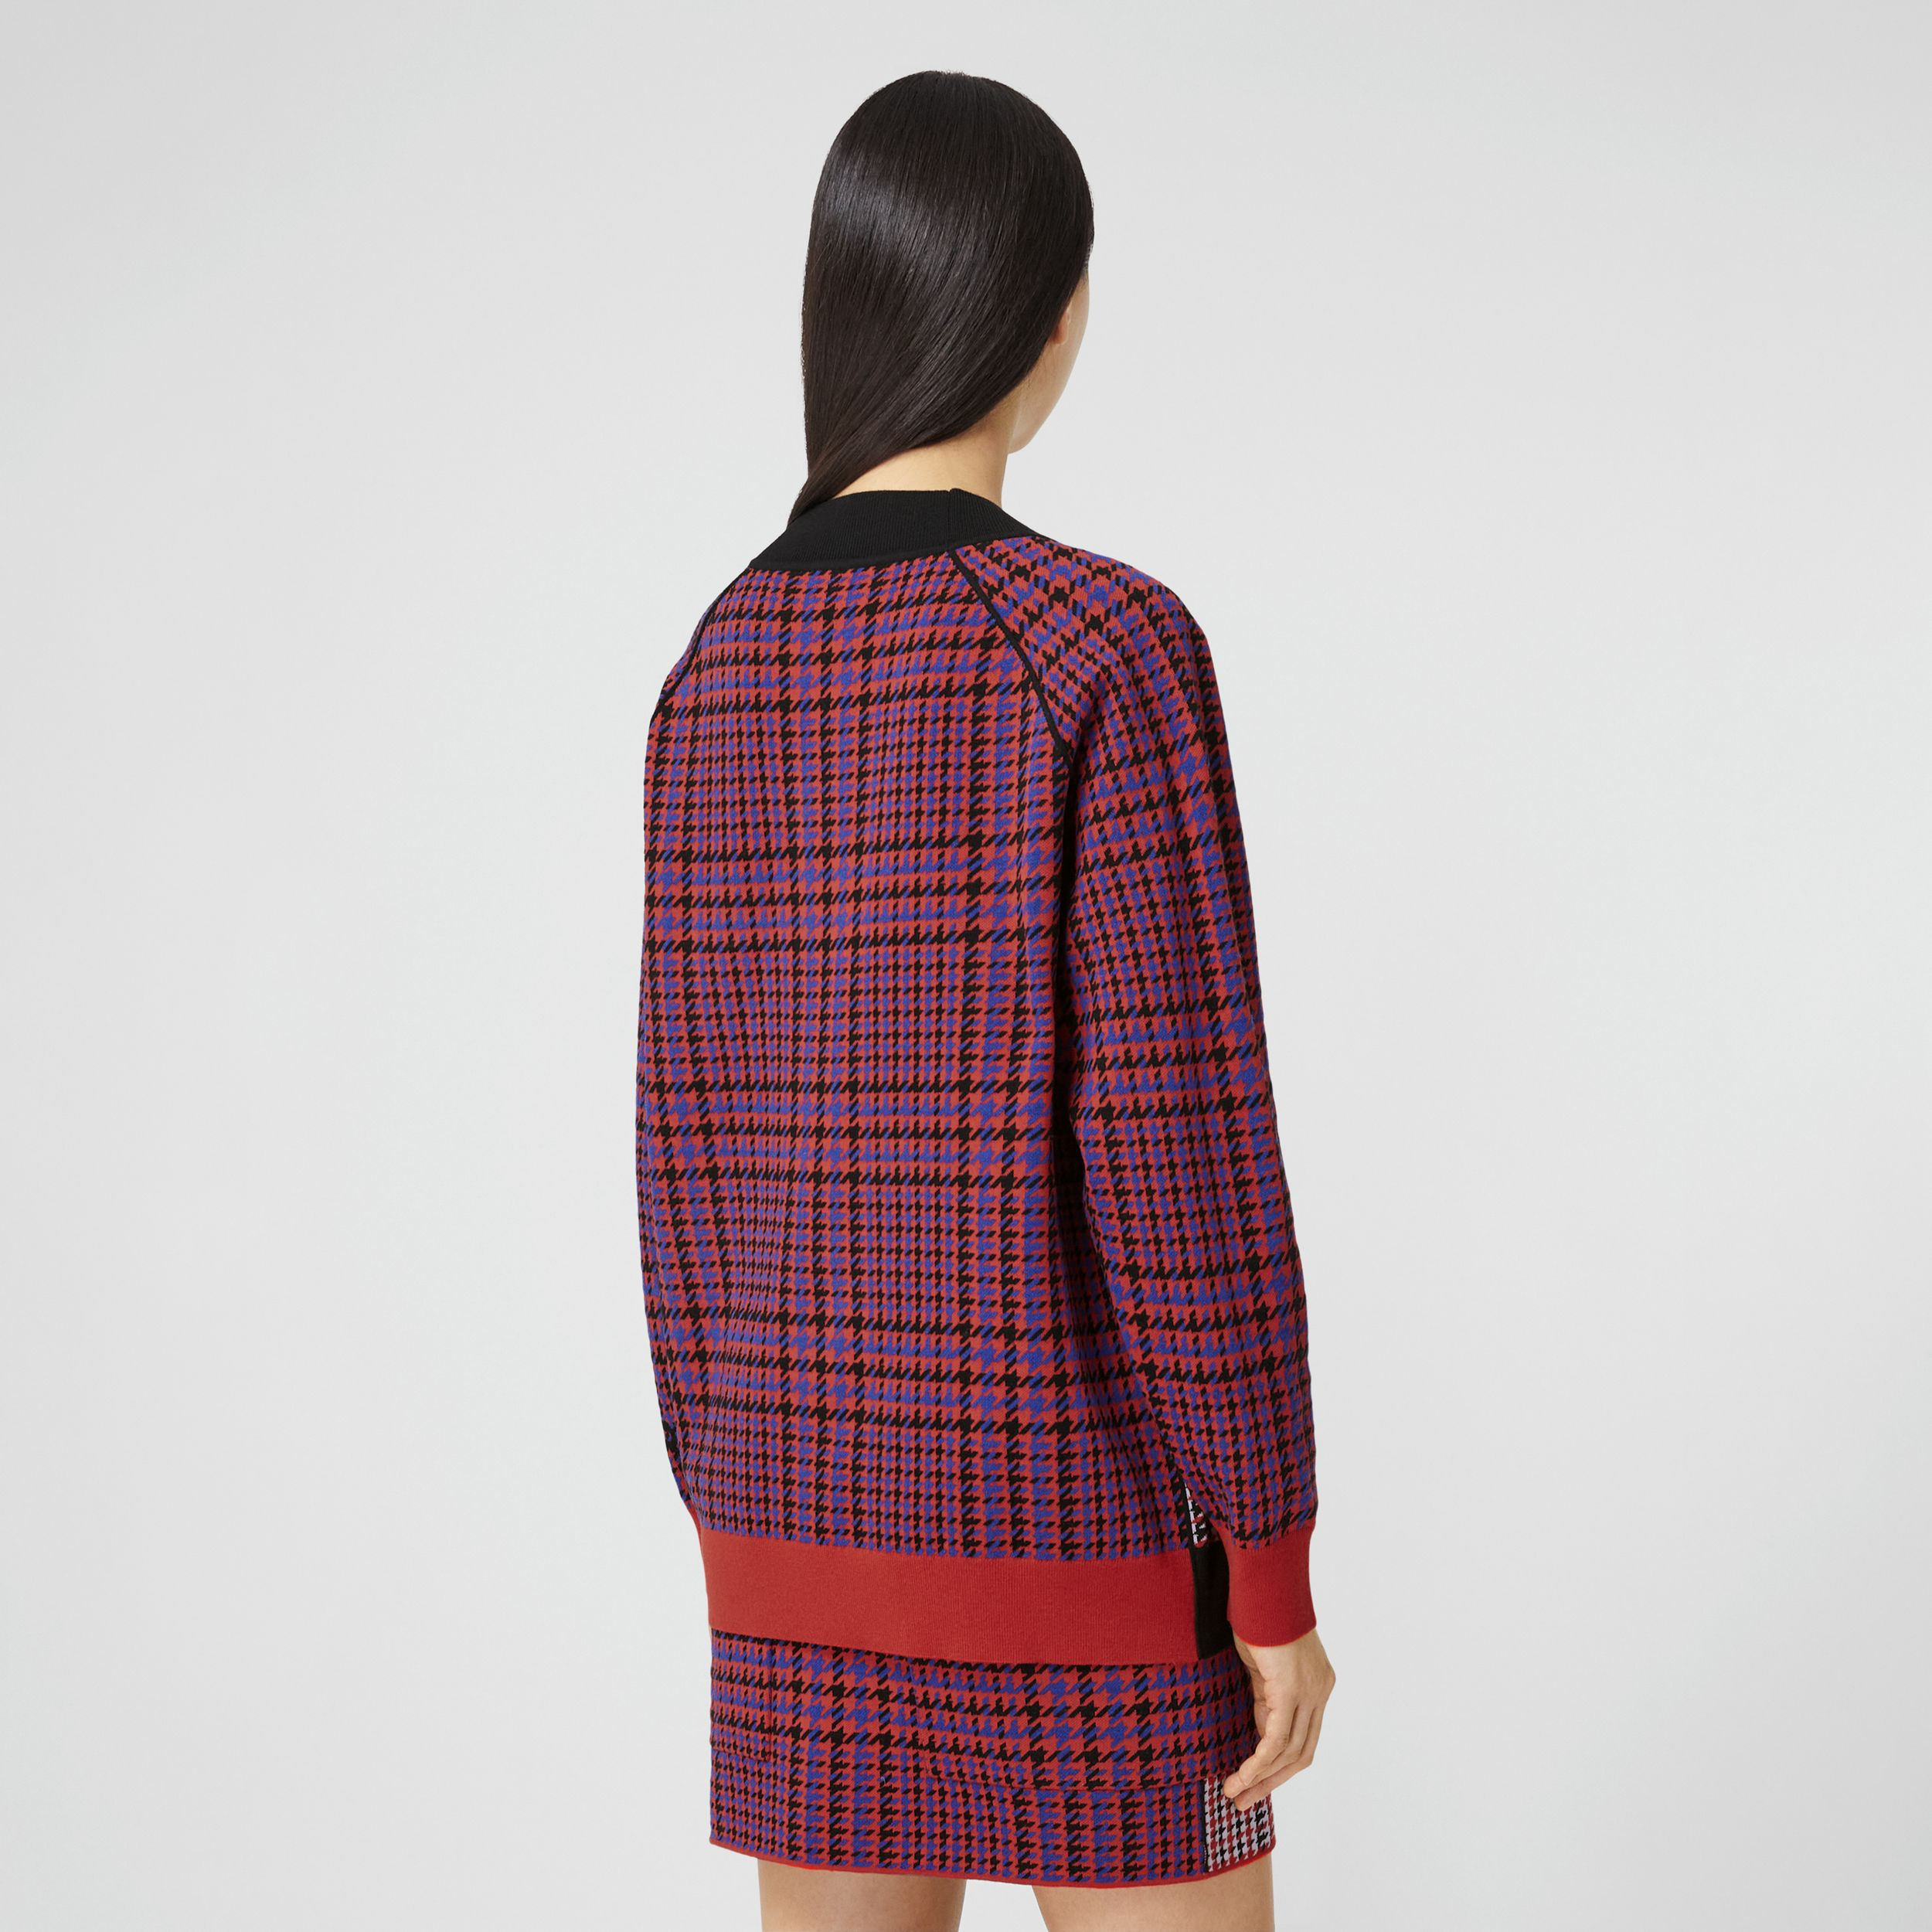 Houndstooth Check Technical Merino Wool Sweater in Bright Red - Women | Burberry Hong Kong S.A.R. - 3